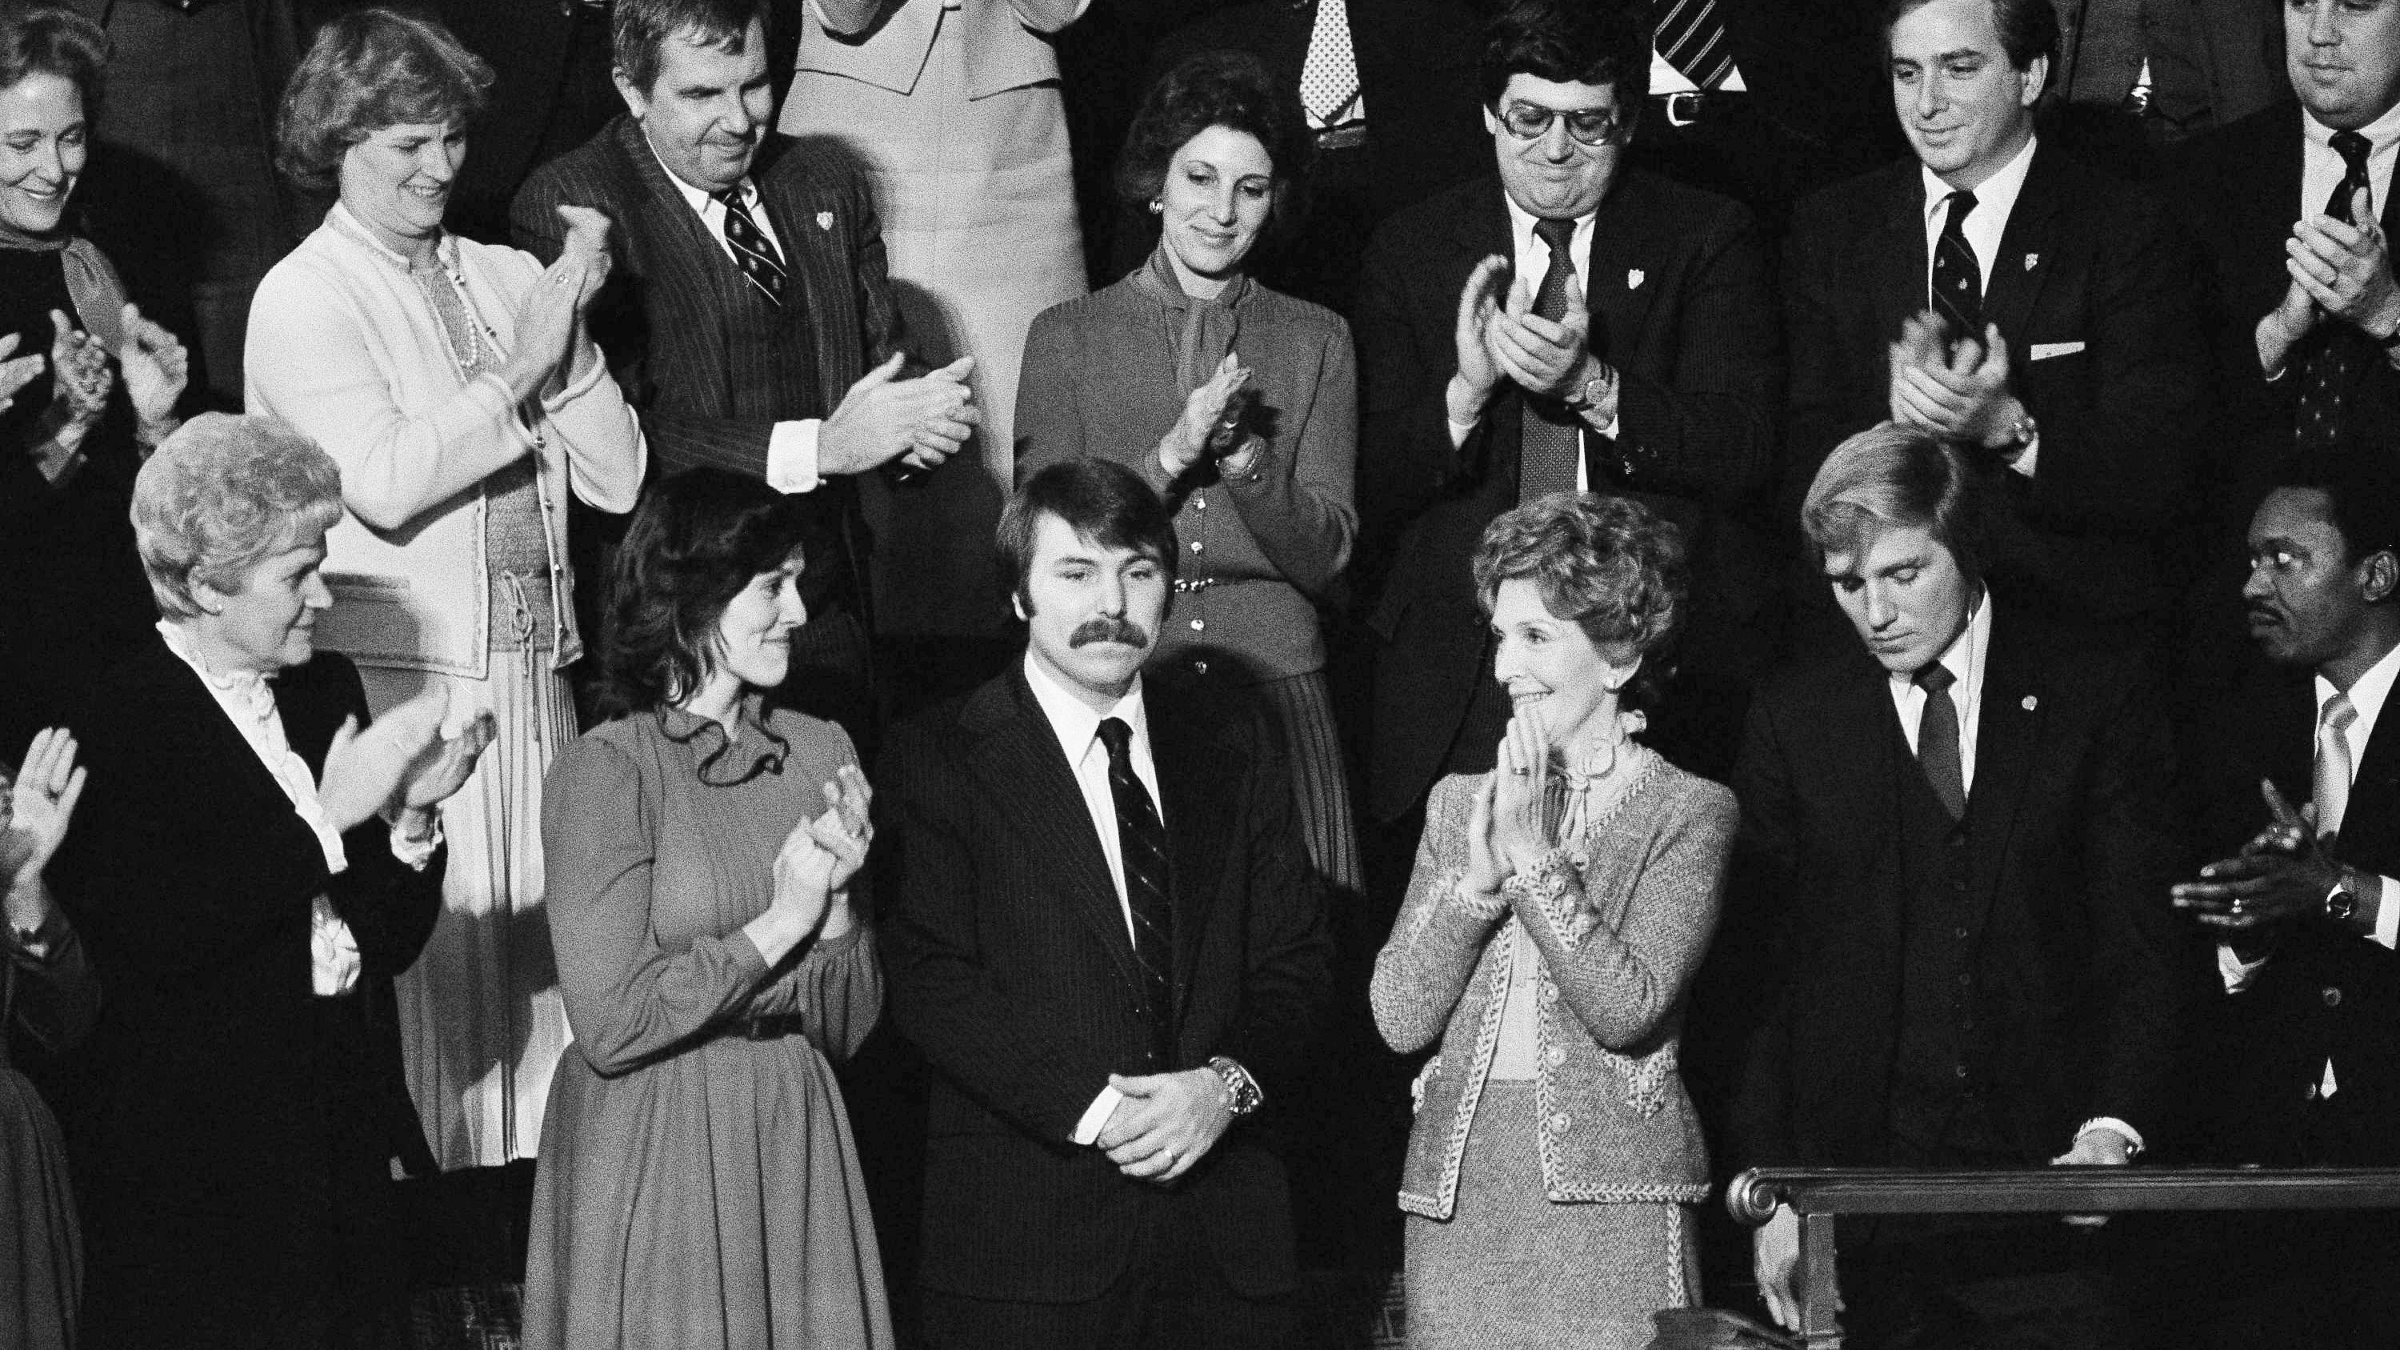 Lennie Skutnik the man who jumped into the Potomac River and saved one of the passengers aboard the Air Florida jetliner that crashed there on January 13 receives applause from first lady Nancy Reagan and his wife at night on Tuesday, Jan. 27, 1982 at House chamber of Capitol Hall in Washington.